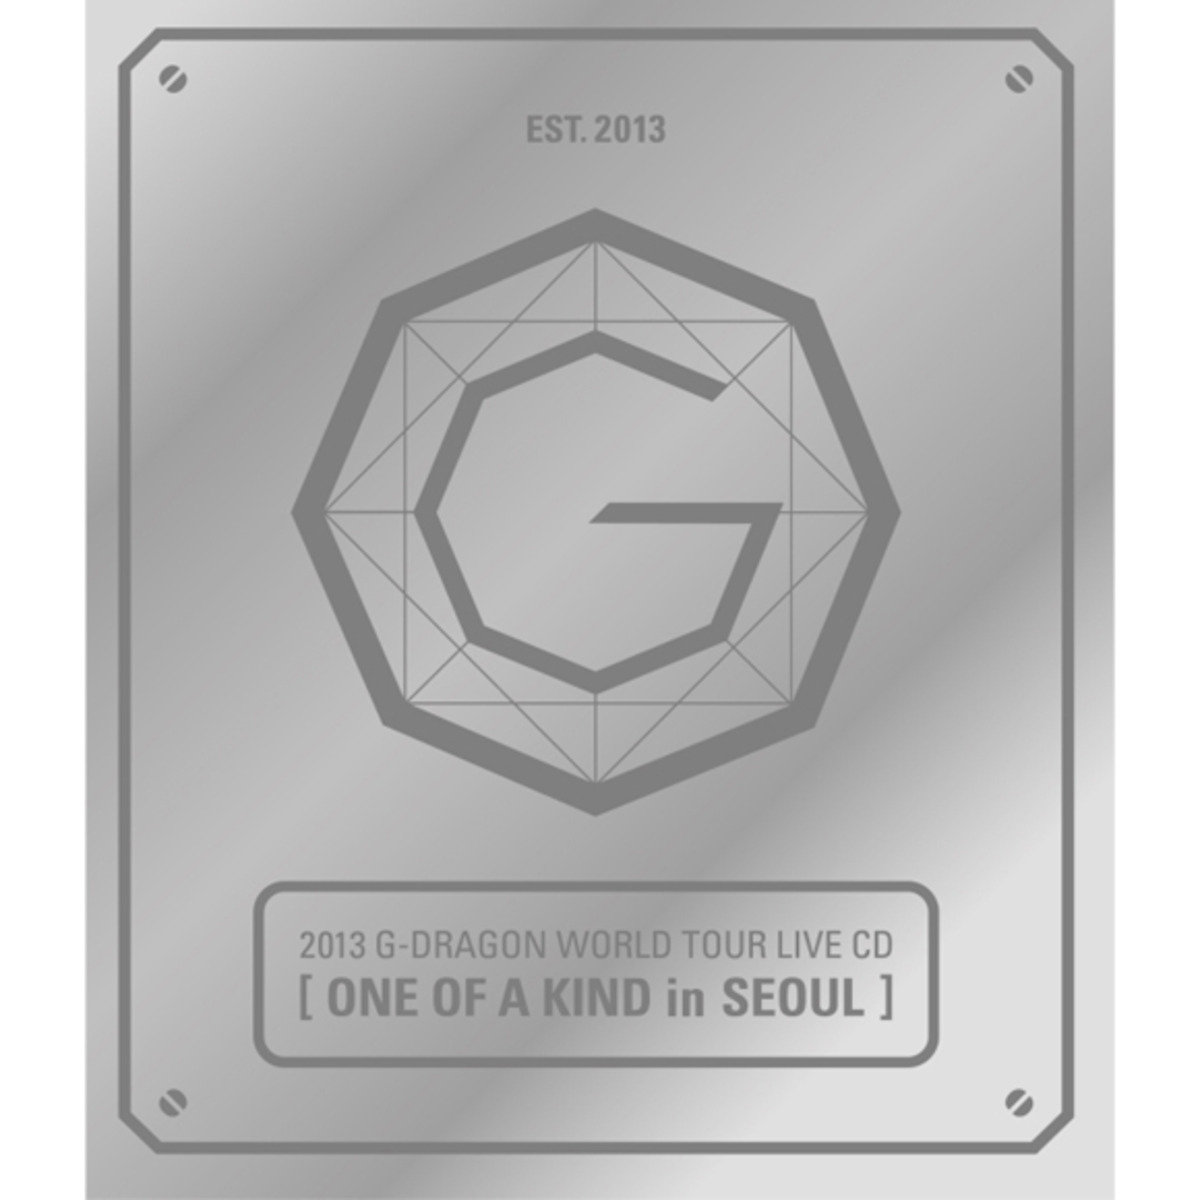 G-Dragon -2013 G-DRAGON WORLD TOUR LIVE CD[ONE OF A KIND in SEOUL](Silver Ver+Booklet+Standing Paper